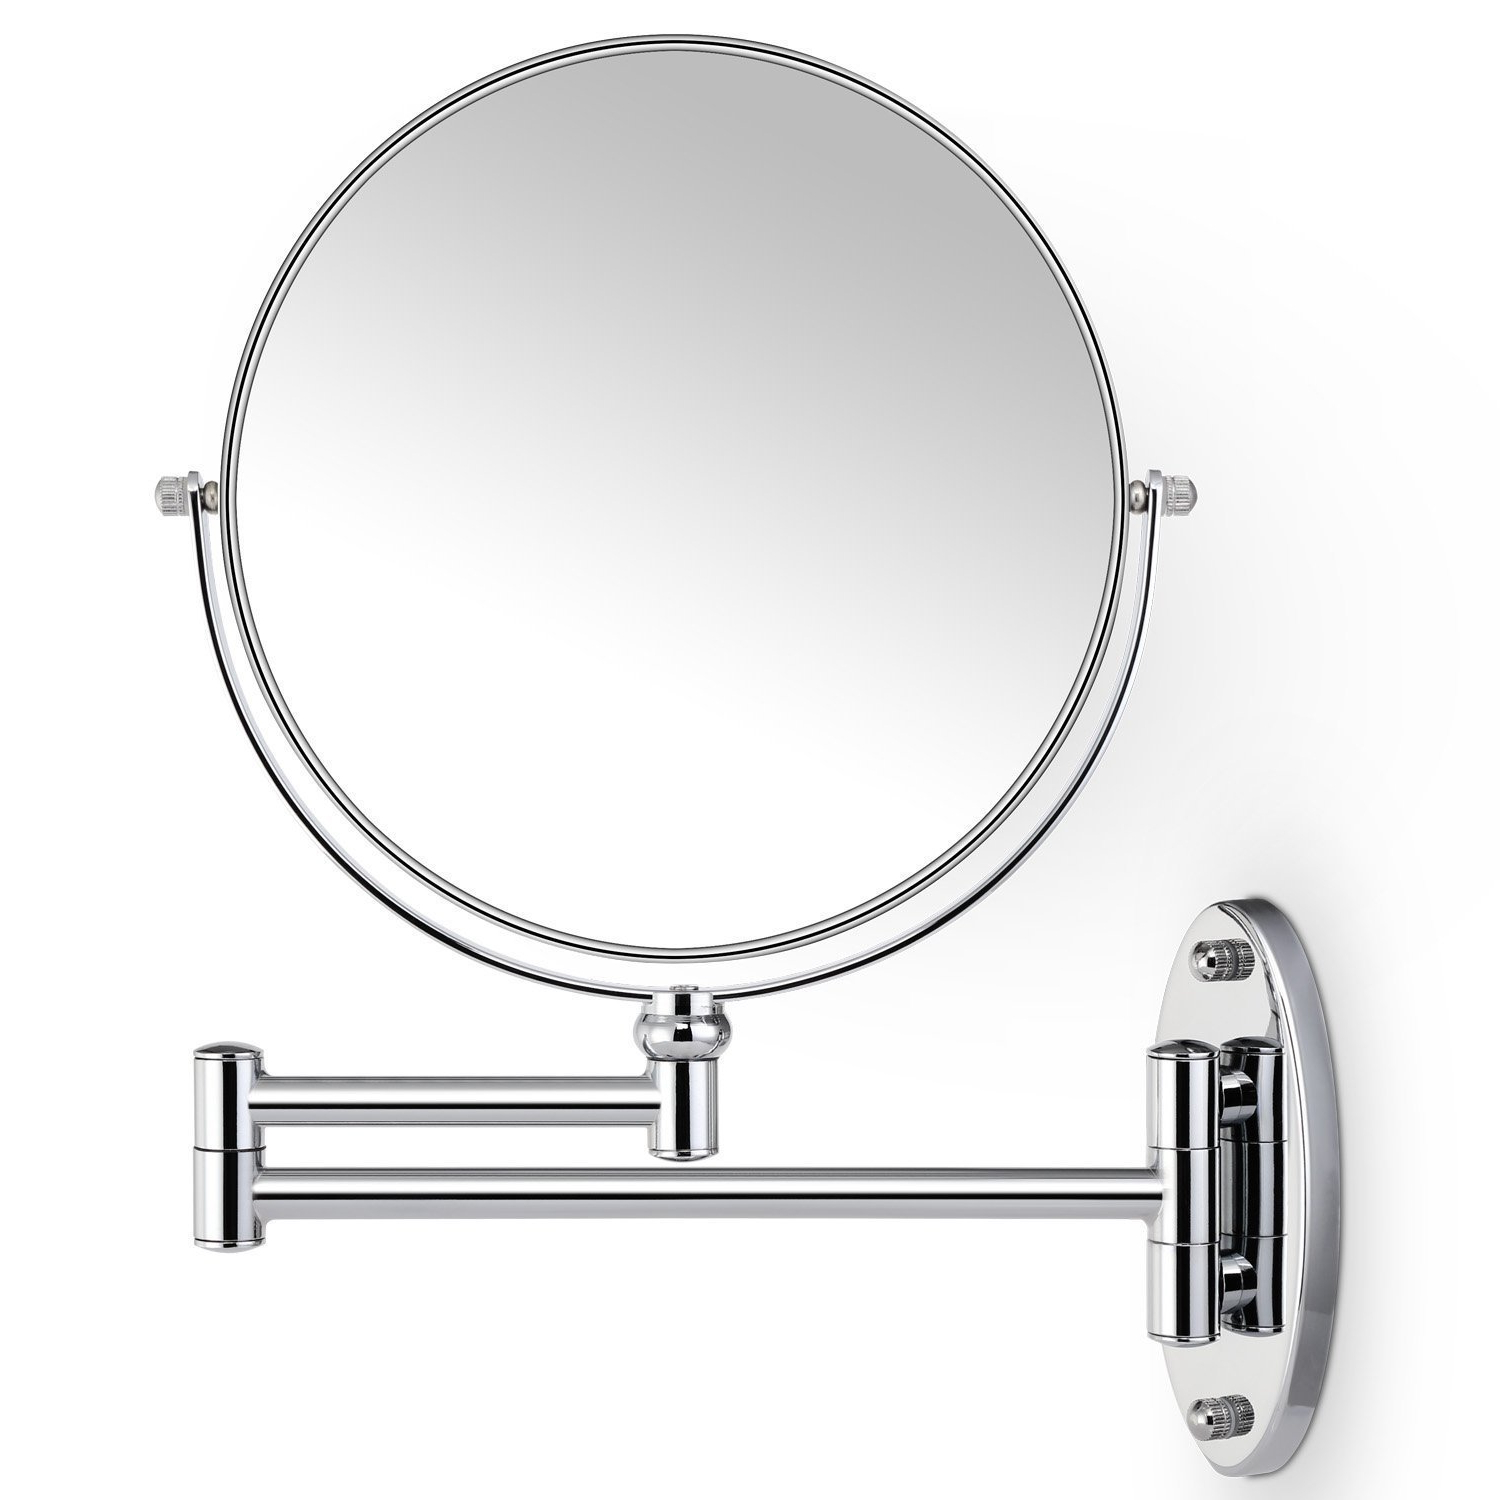 Cosprof Bathroom Mirror 10X/1X Magnification Double Sided 8 Inch Wall  Mounted Vanity Magnifying Mirror Pertaining To Widely Used Magnifying Wall Mirrors For Bathroom (View 4 of 20)